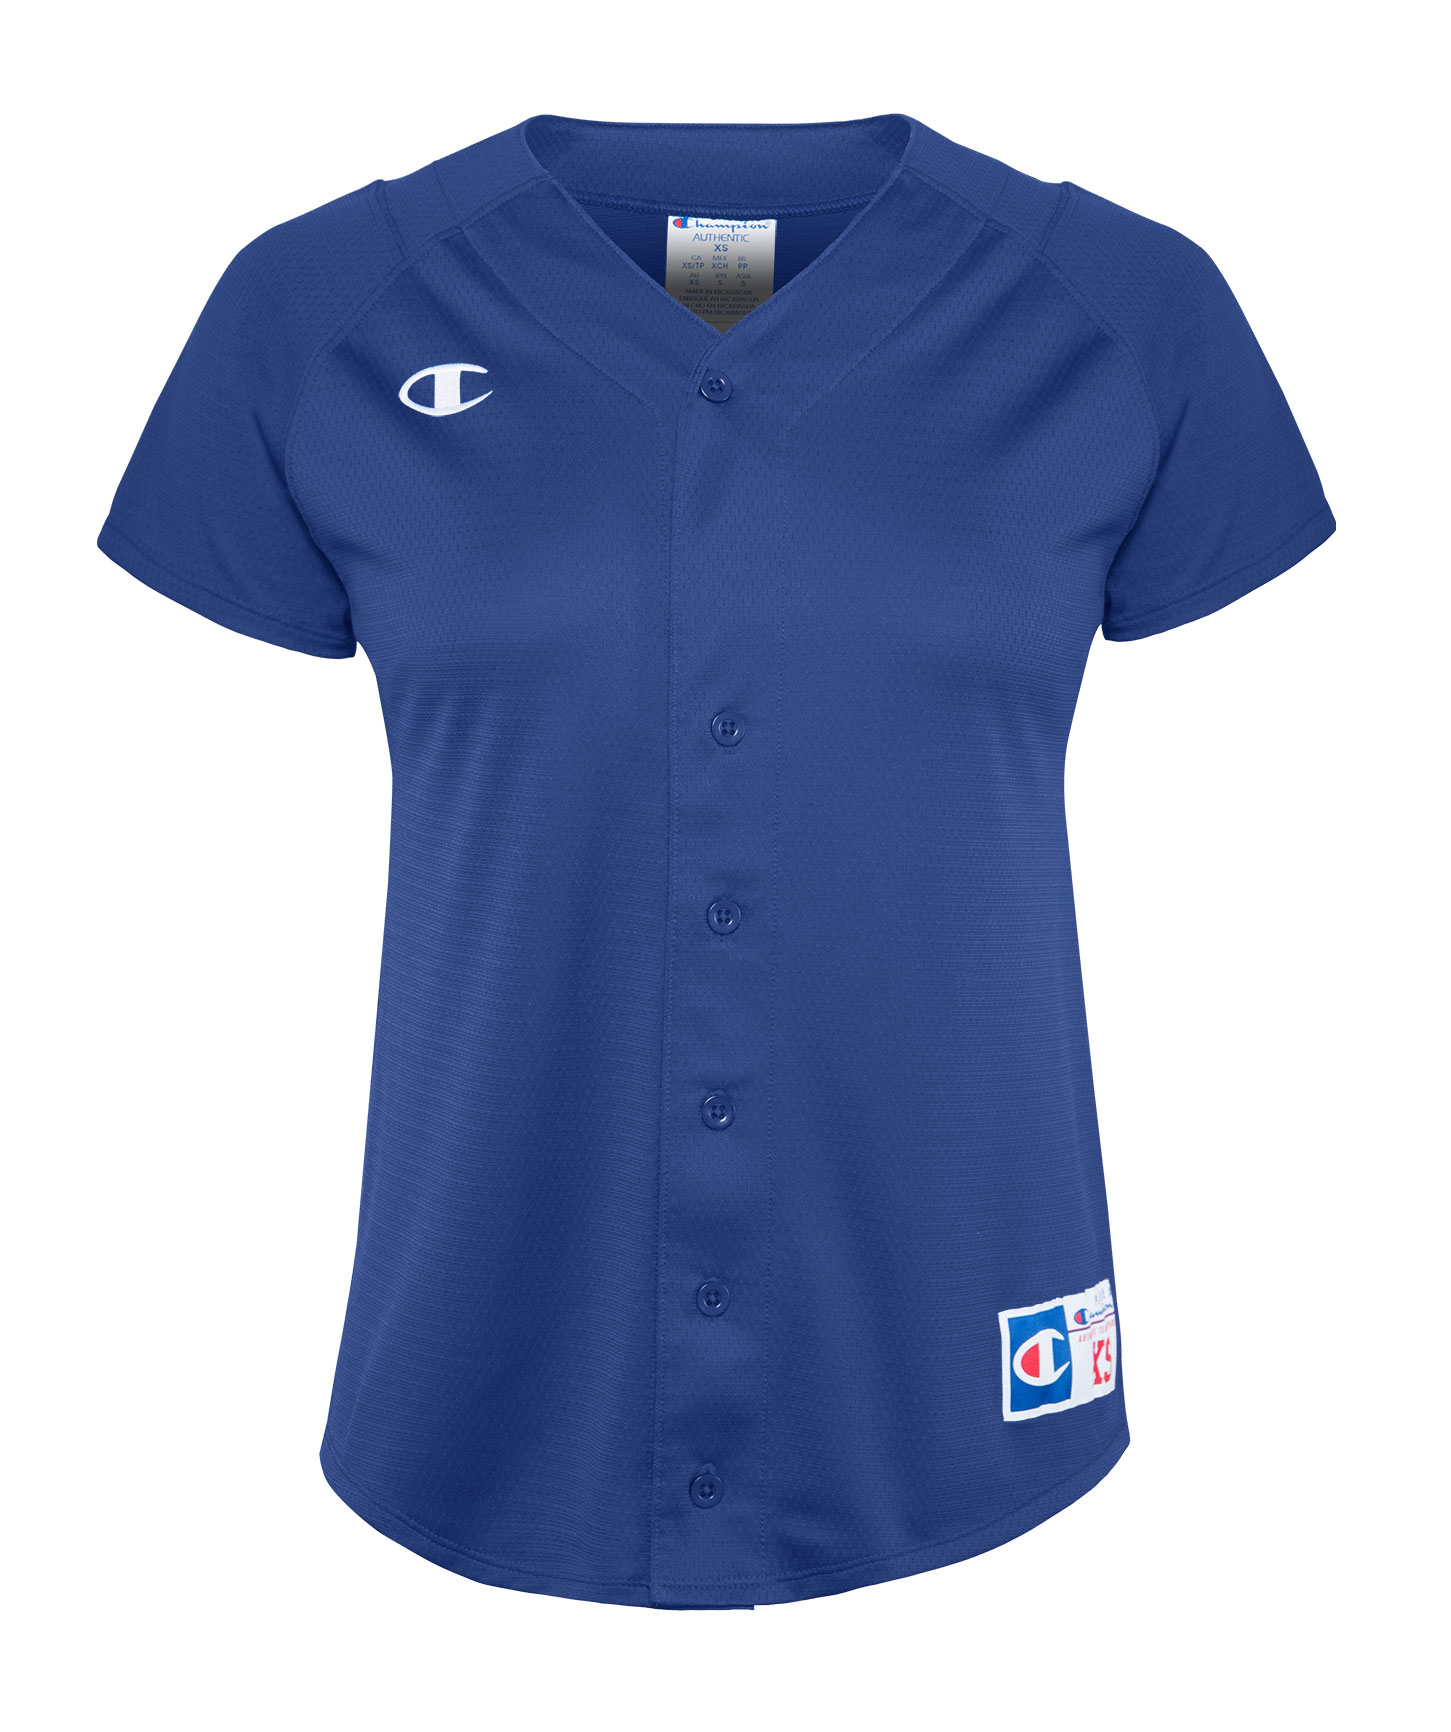 Champion Youth Full-Button Jersey